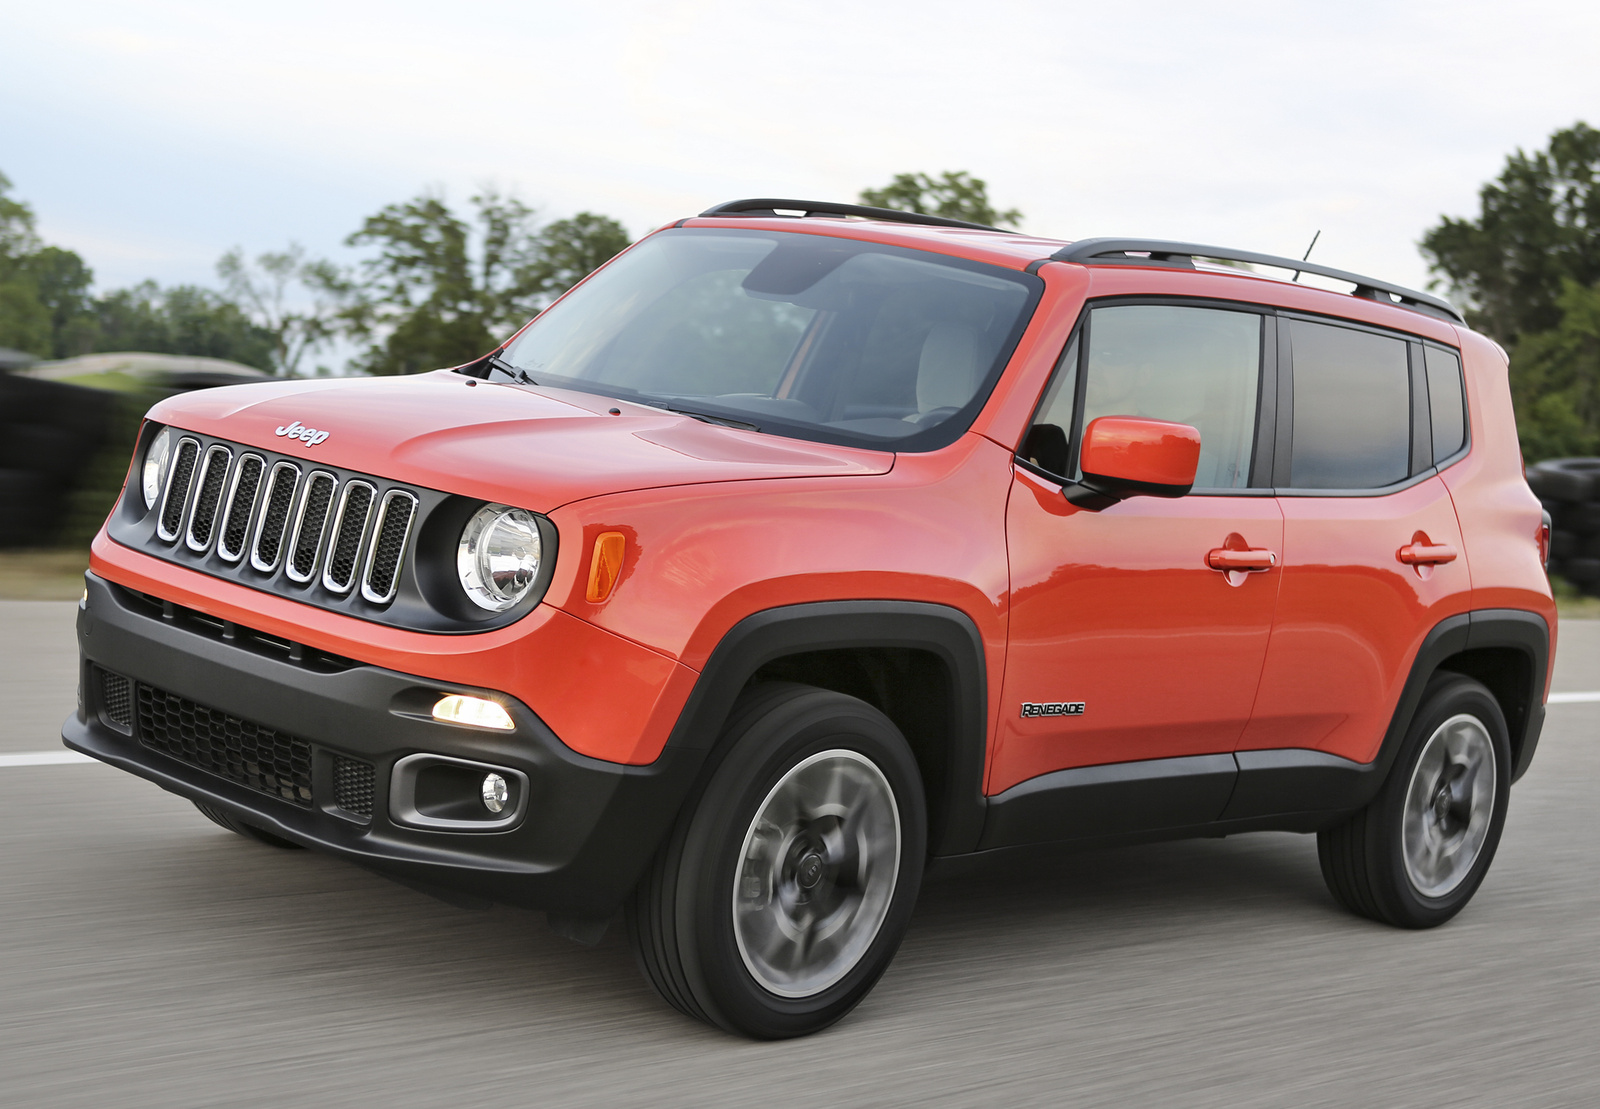 2017 jeep renegade for sale in your area - cargurus